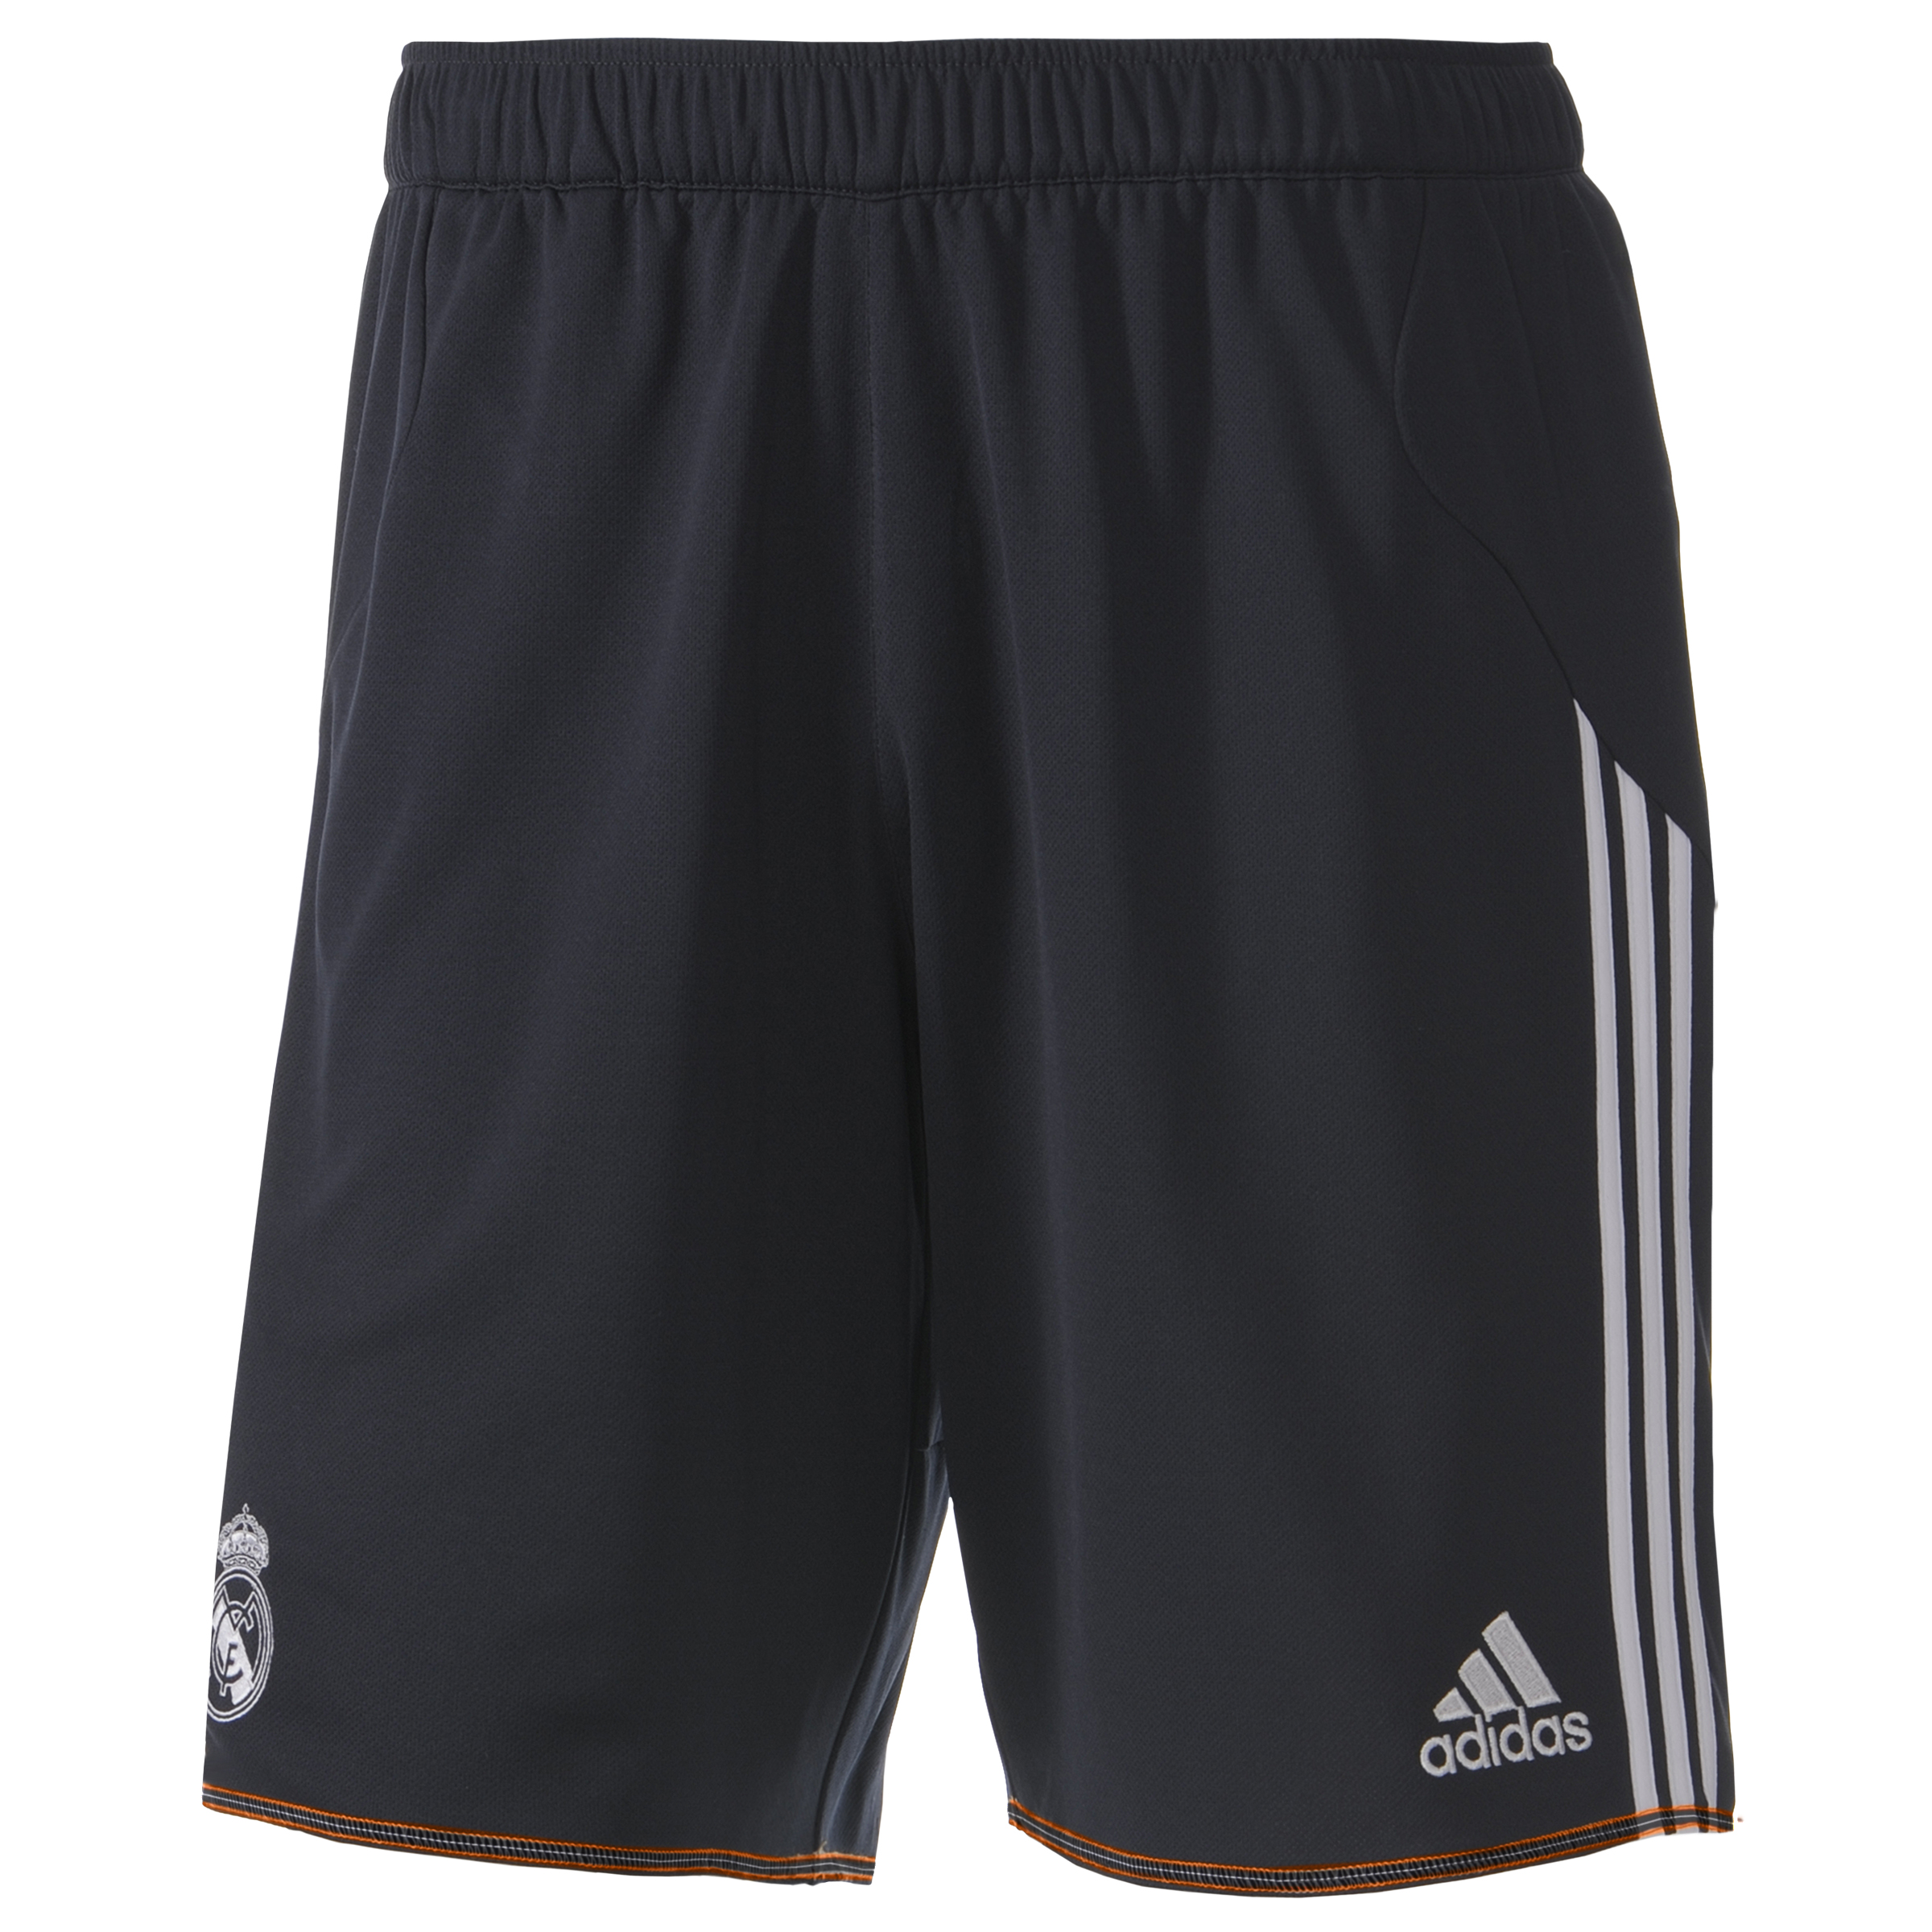 Real Madrid Training Short - Mens Black